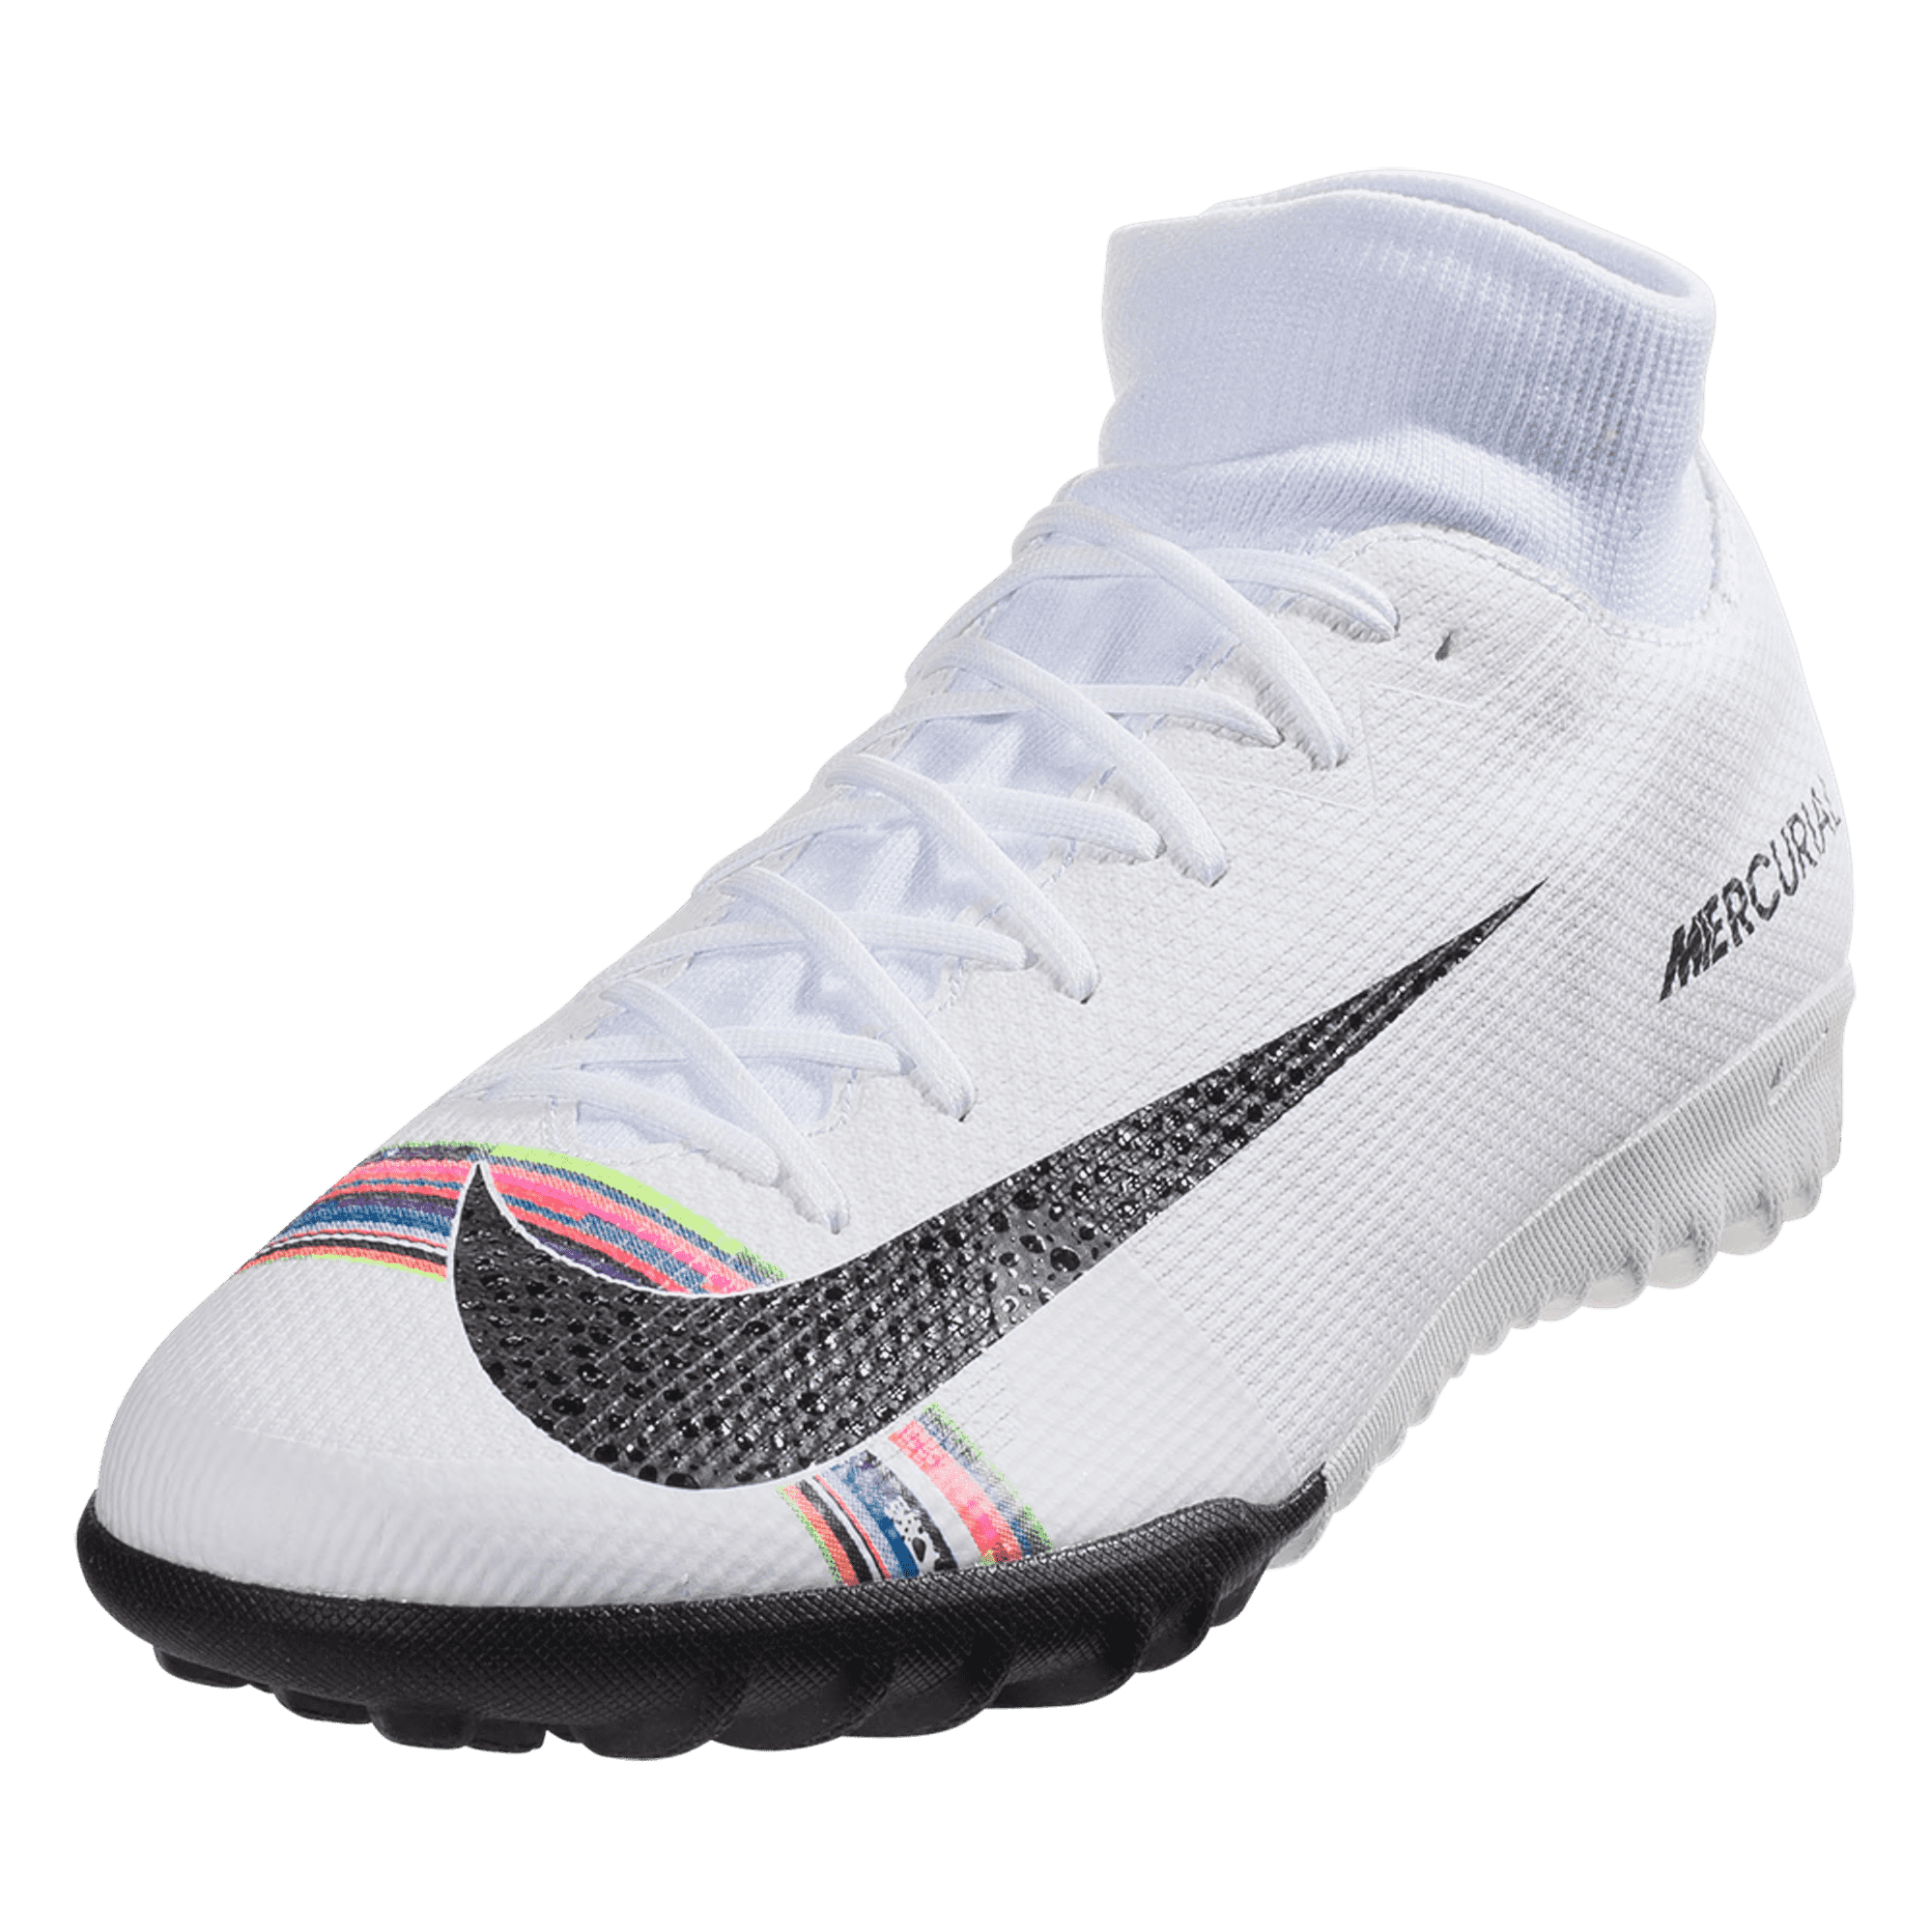 best service 91d3e 17785 Nike Mercurial Superfly X VI Academy SE TF Artificial Turf Soccer Shoe -  Platinum / Black / White